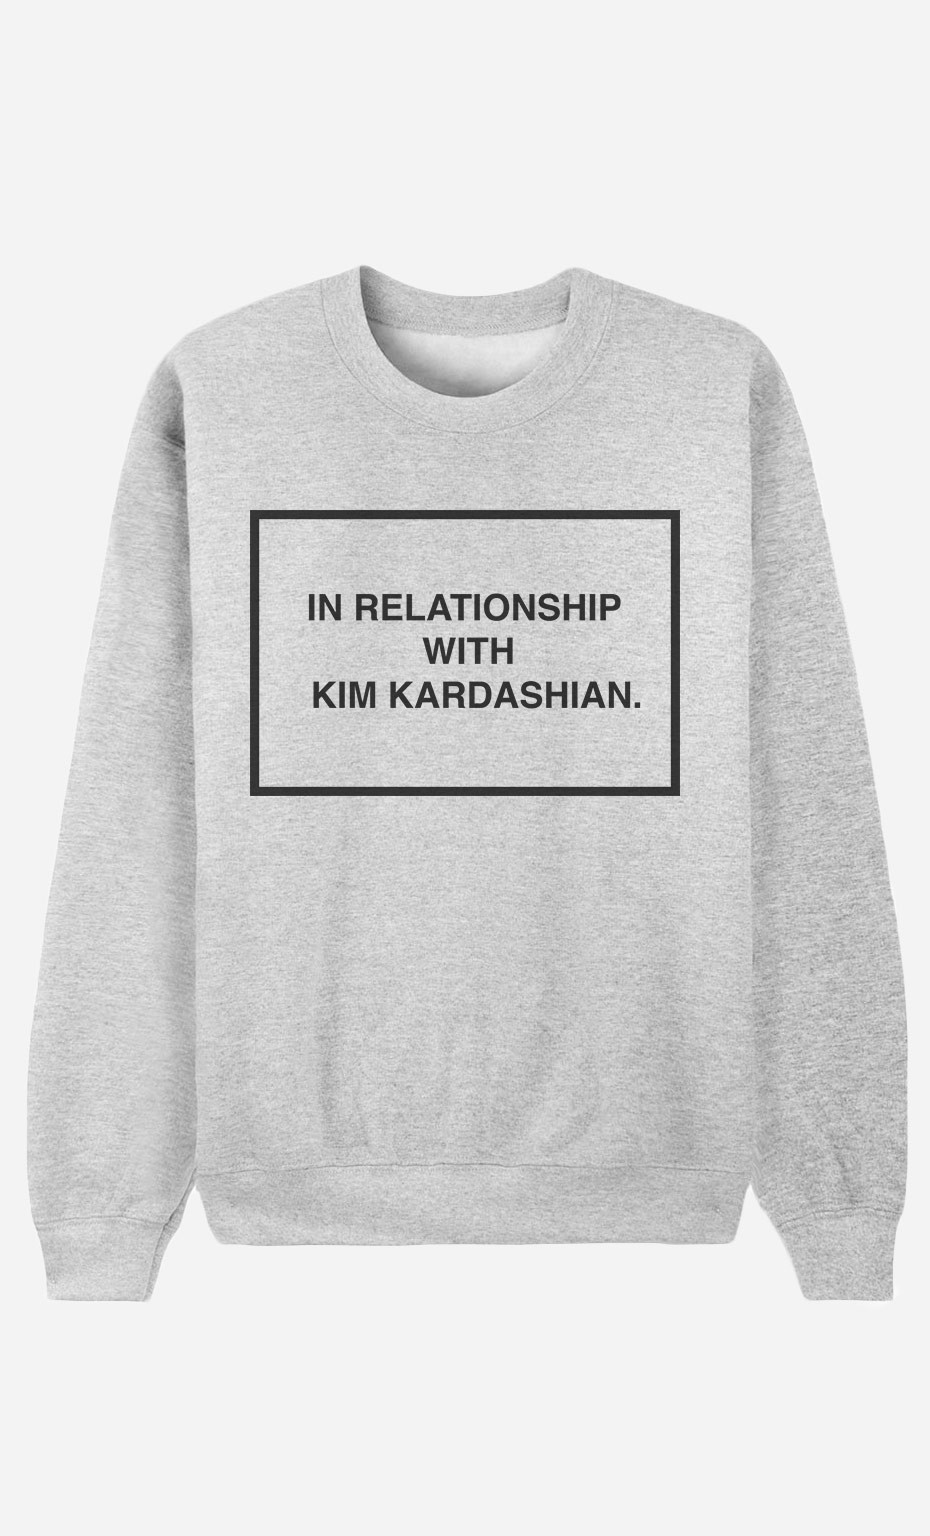 Sweatshirt With Kim Kardashian